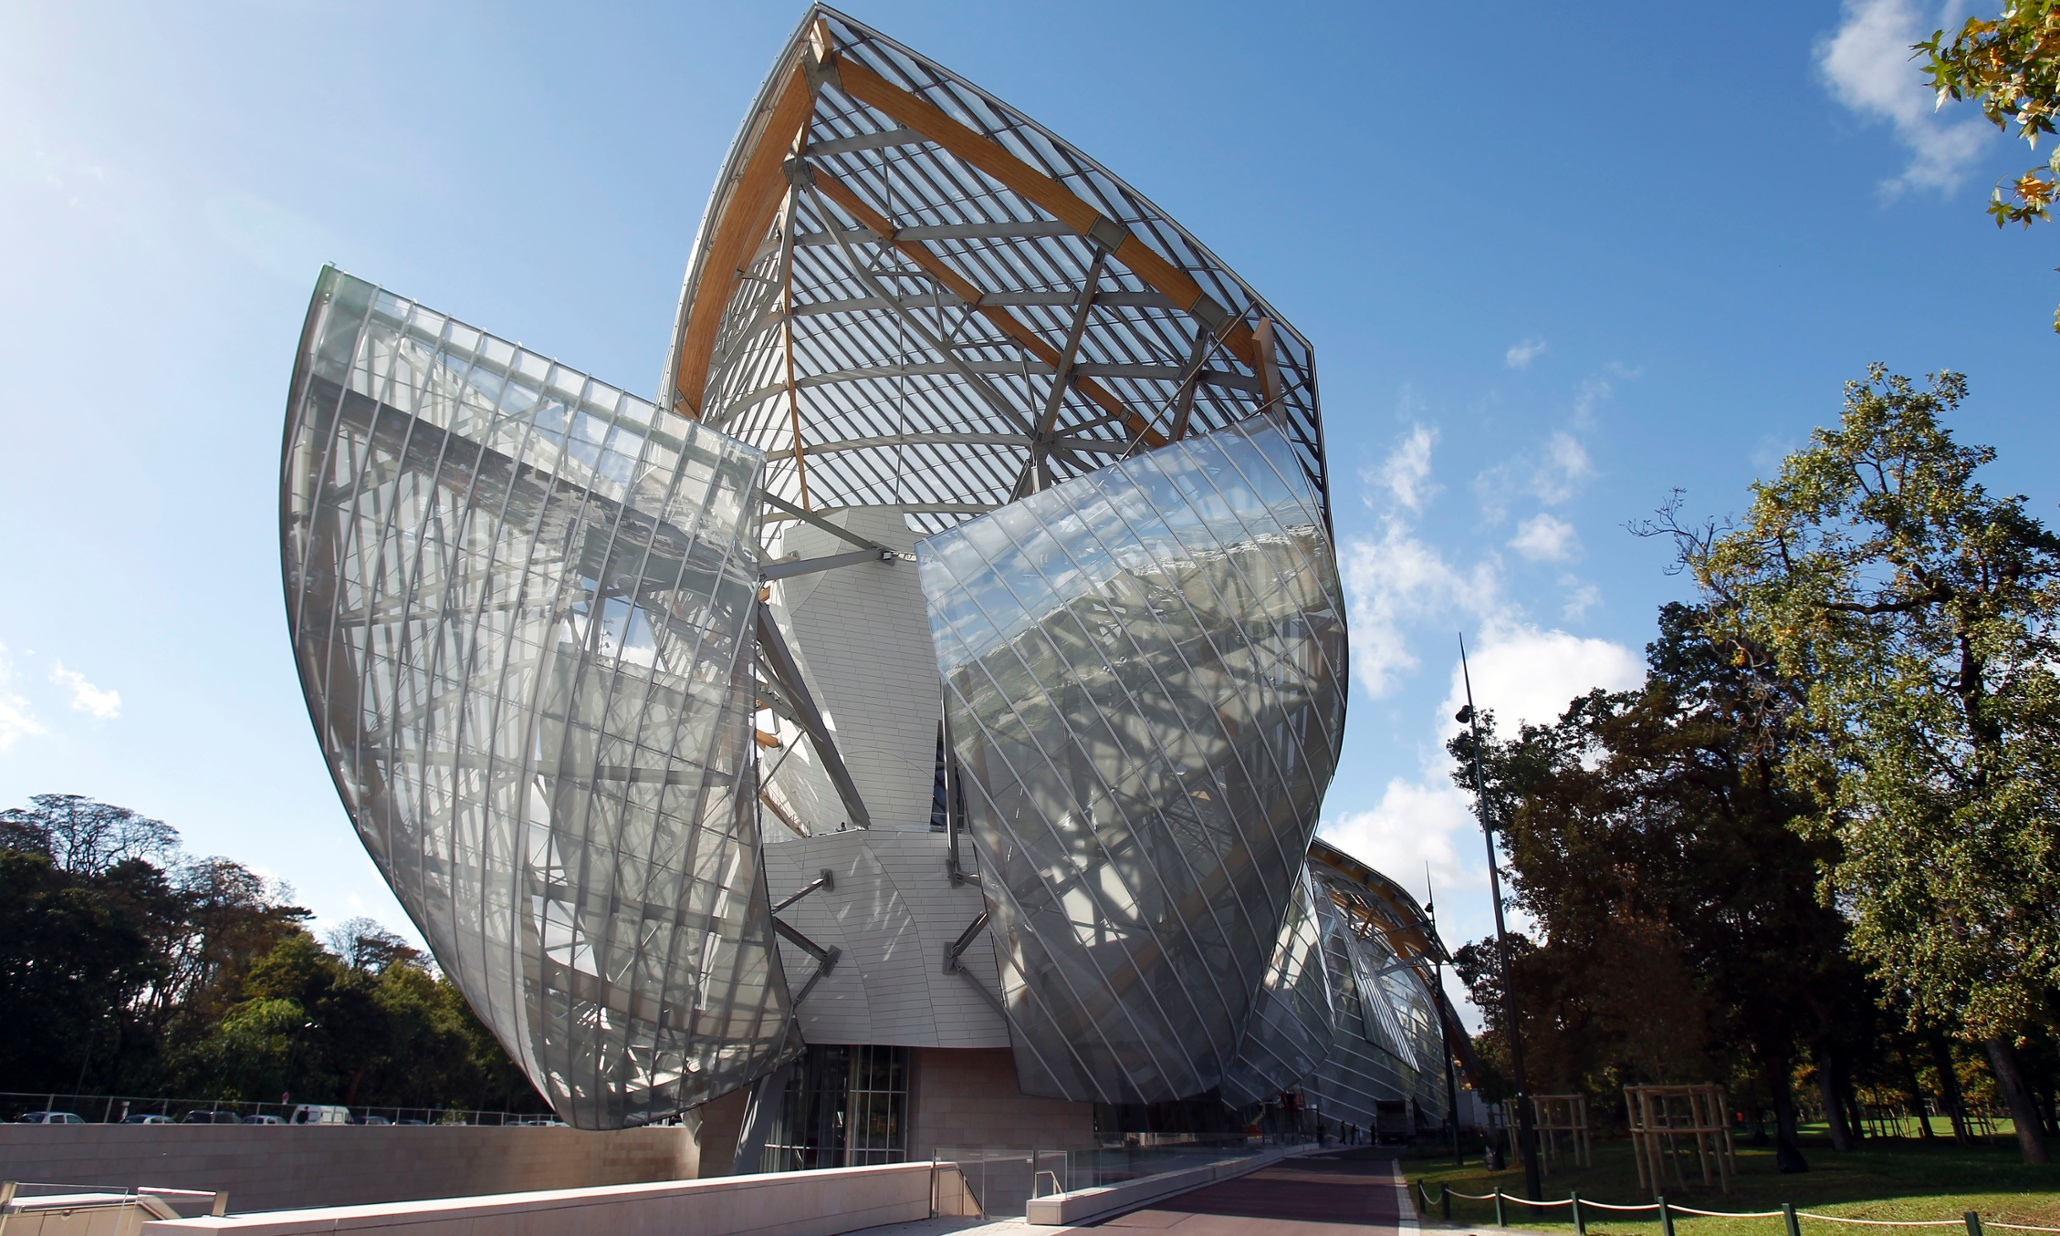 fondation louis vuitton paris review everything and the bling from frank gehry art and. Black Bedroom Furniture Sets. Home Design Ideas